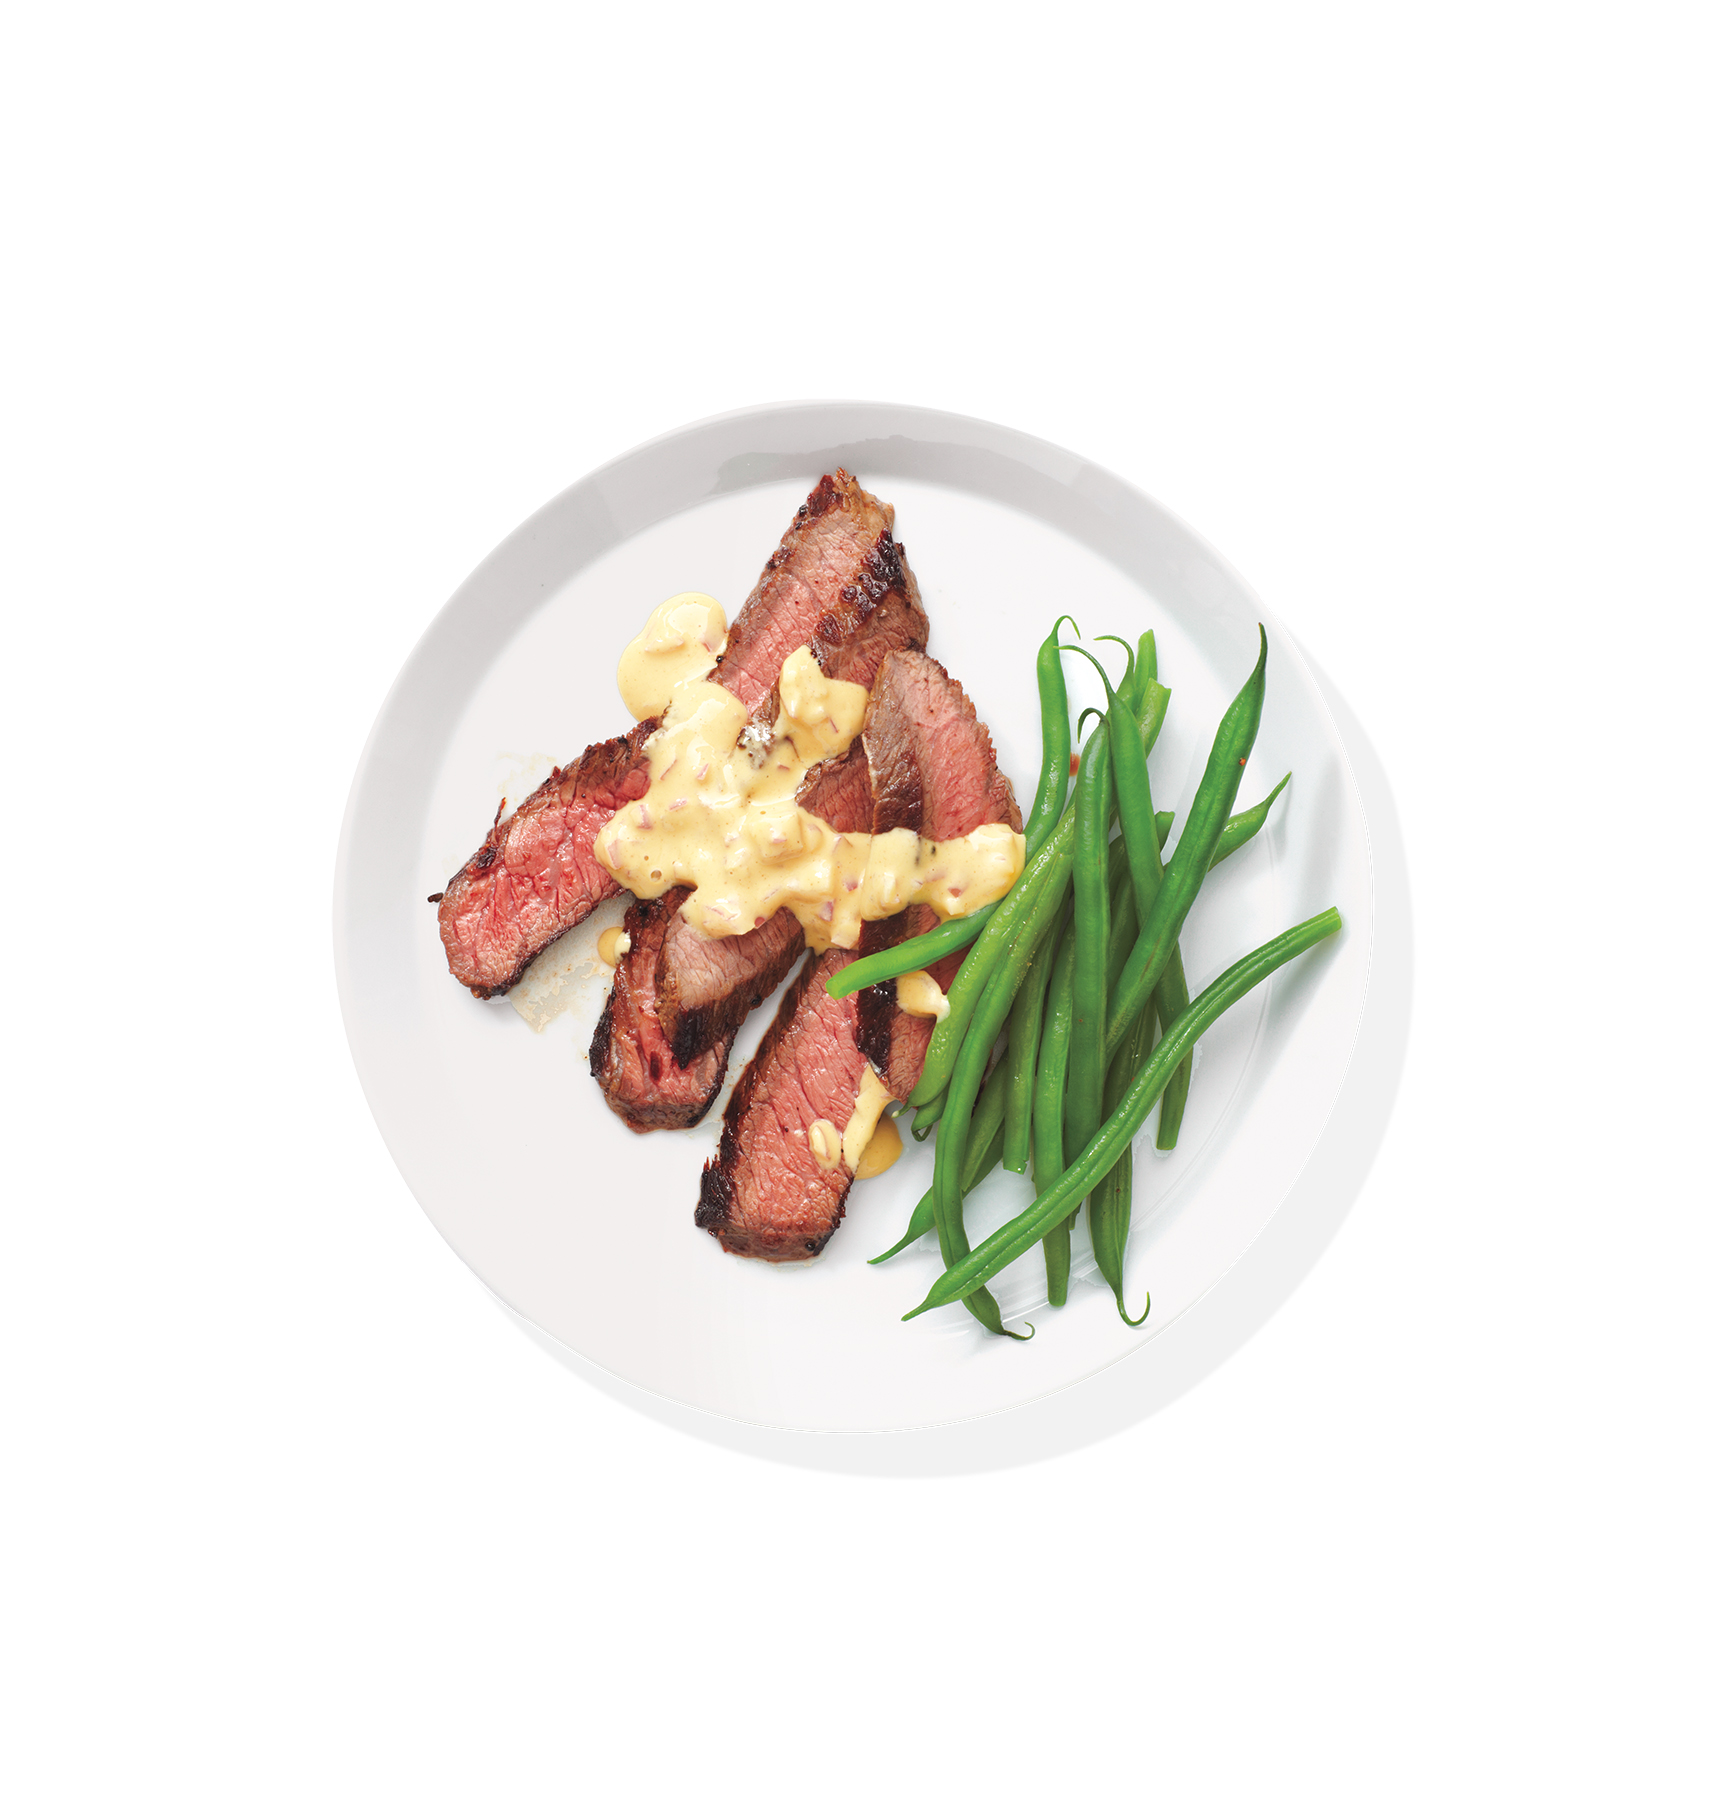 Steak With Mustard-Shallot Sauce